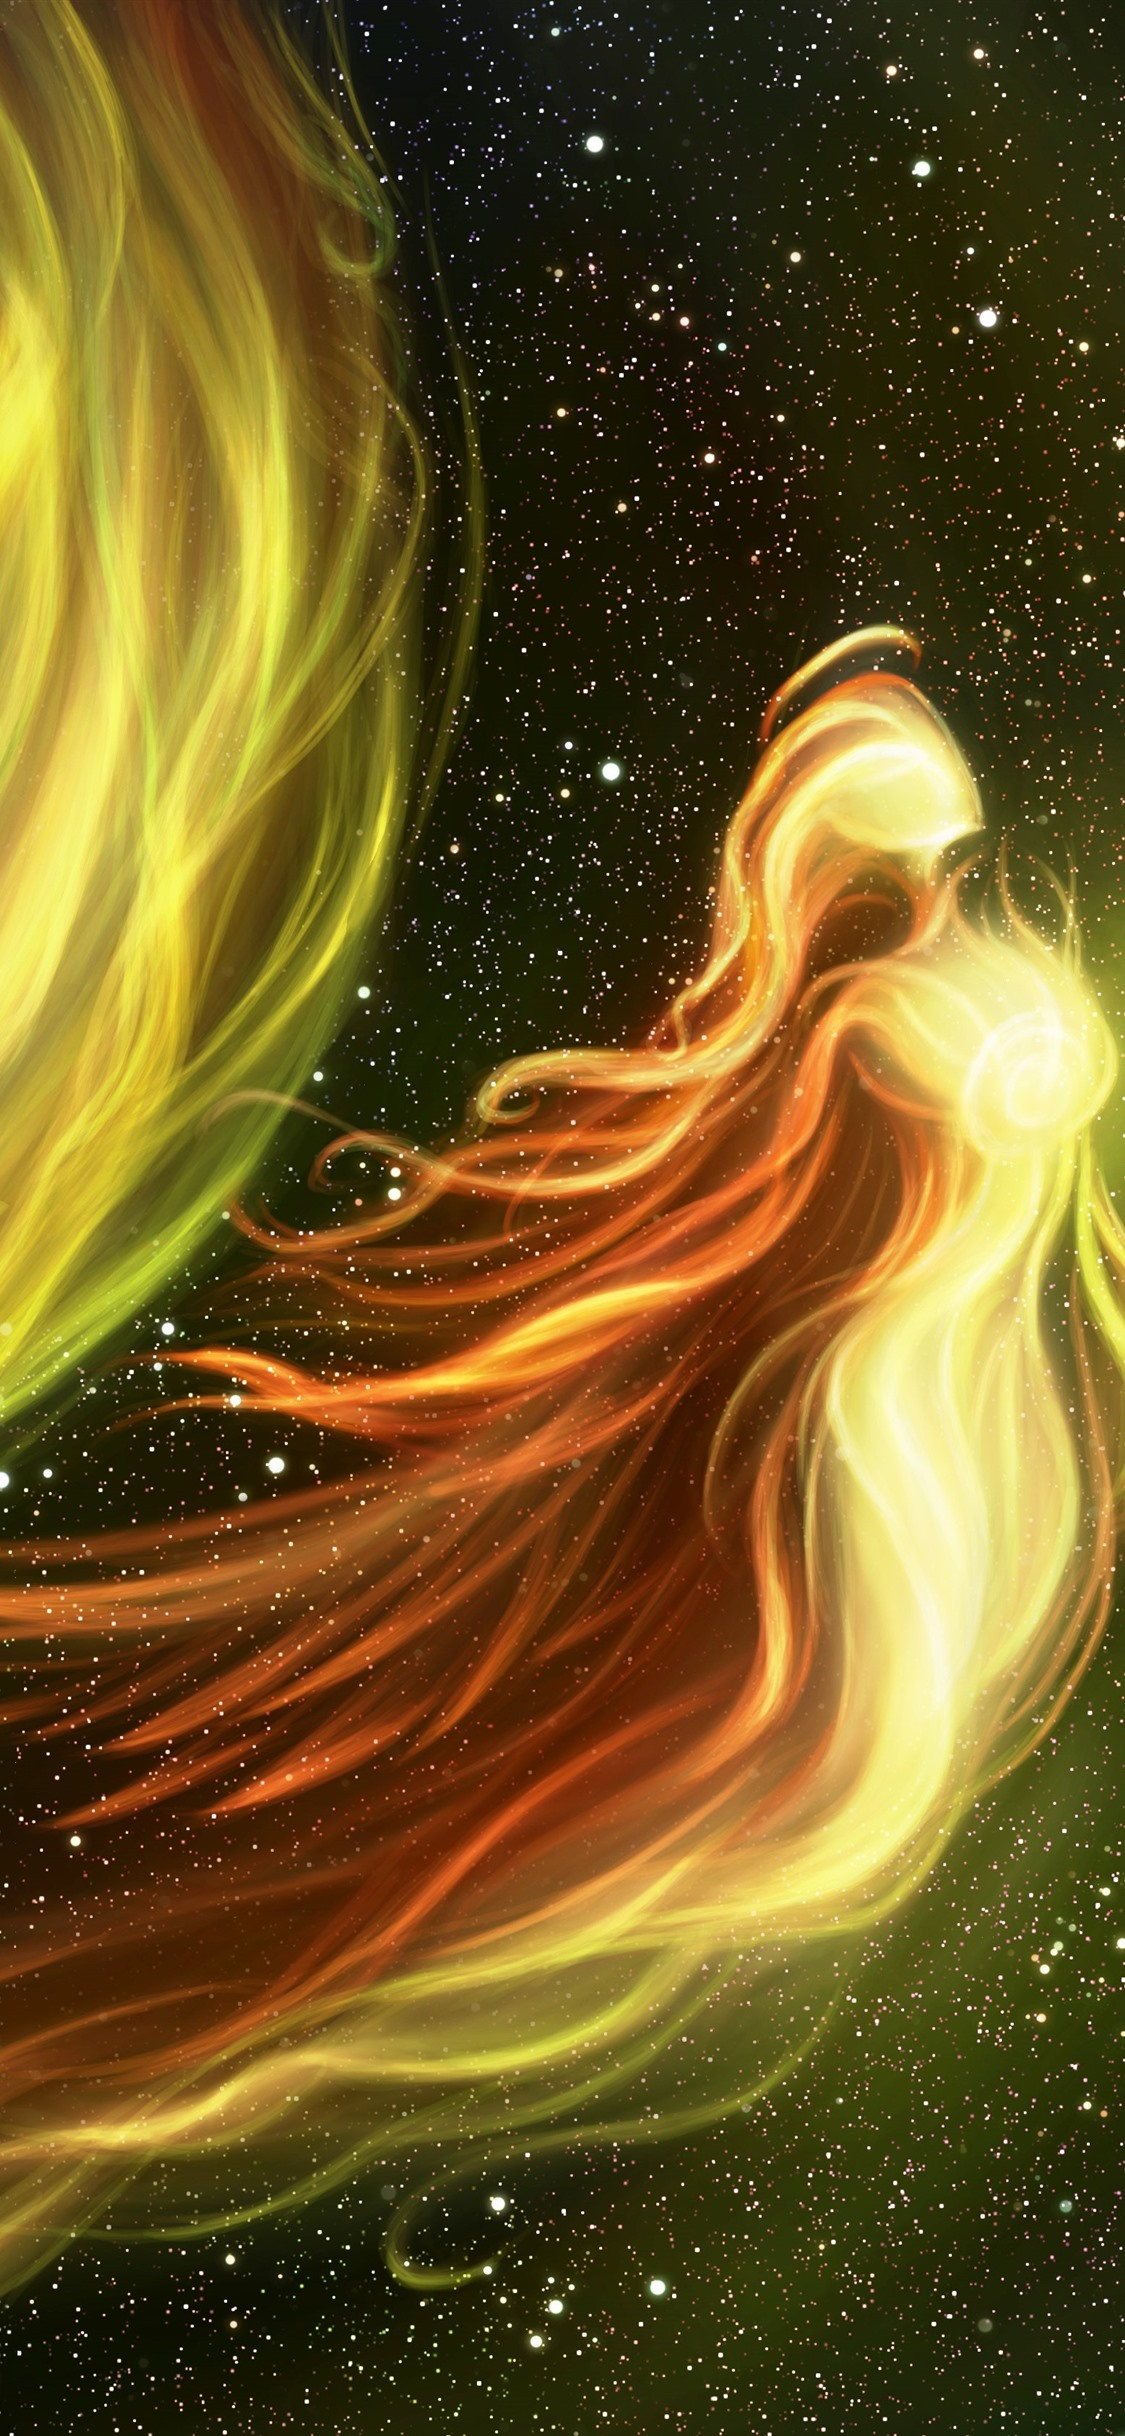 Wallpaper starry abstract fire girl creative 3840x2160 - 4k girl wallpaper for iphone ...